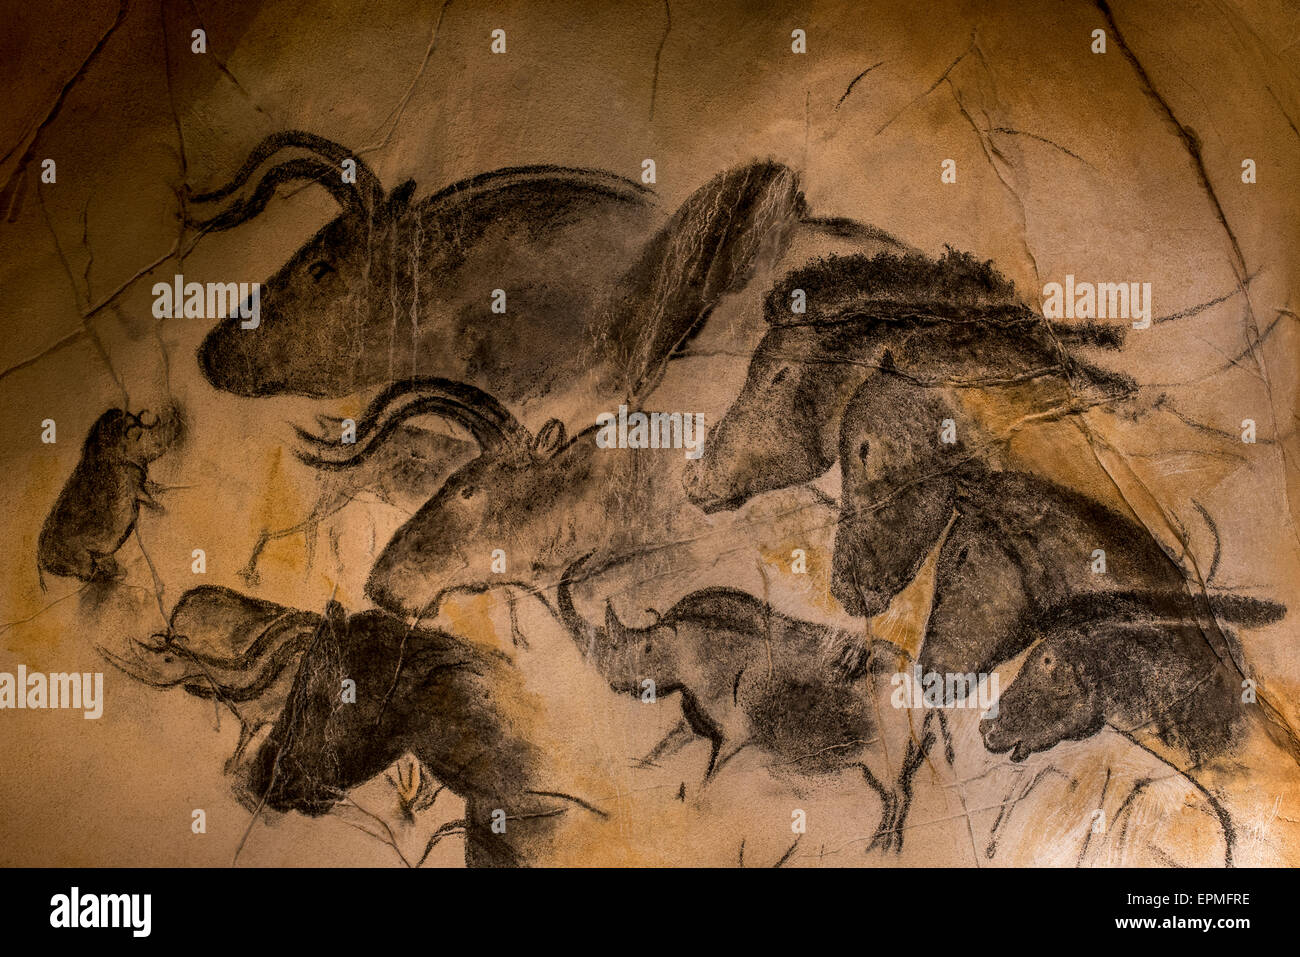 Replica of prehistoric rock paintings of the Chauvet Cave, Ardèche, France, showing woolly rhinoceros, aurochs - Stock Image